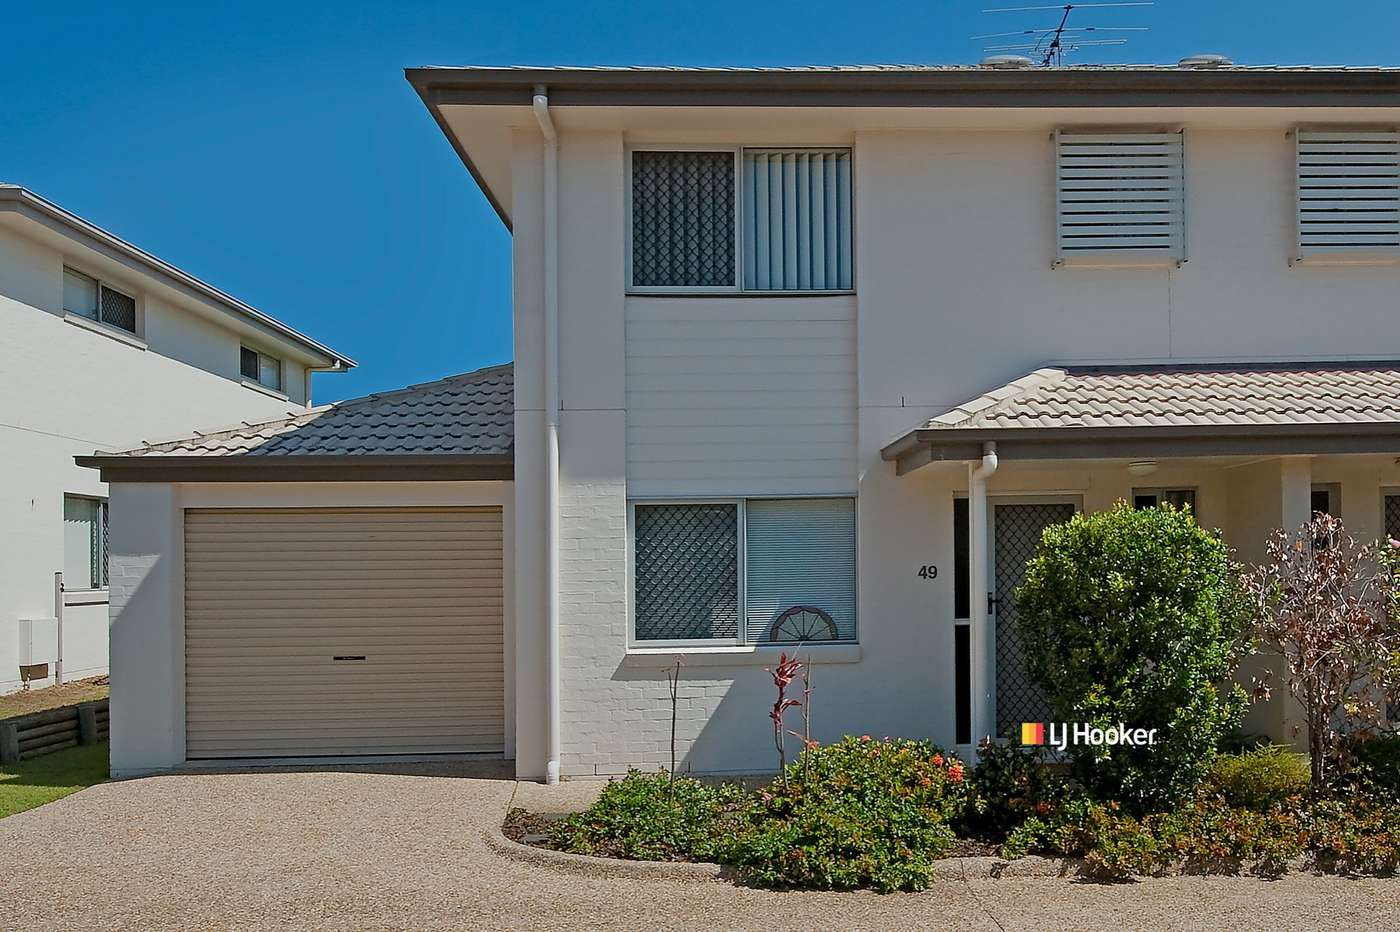 Main view of Homely unit listing, 49/3 Brushwood Court, Mango Hill, QLD 4509